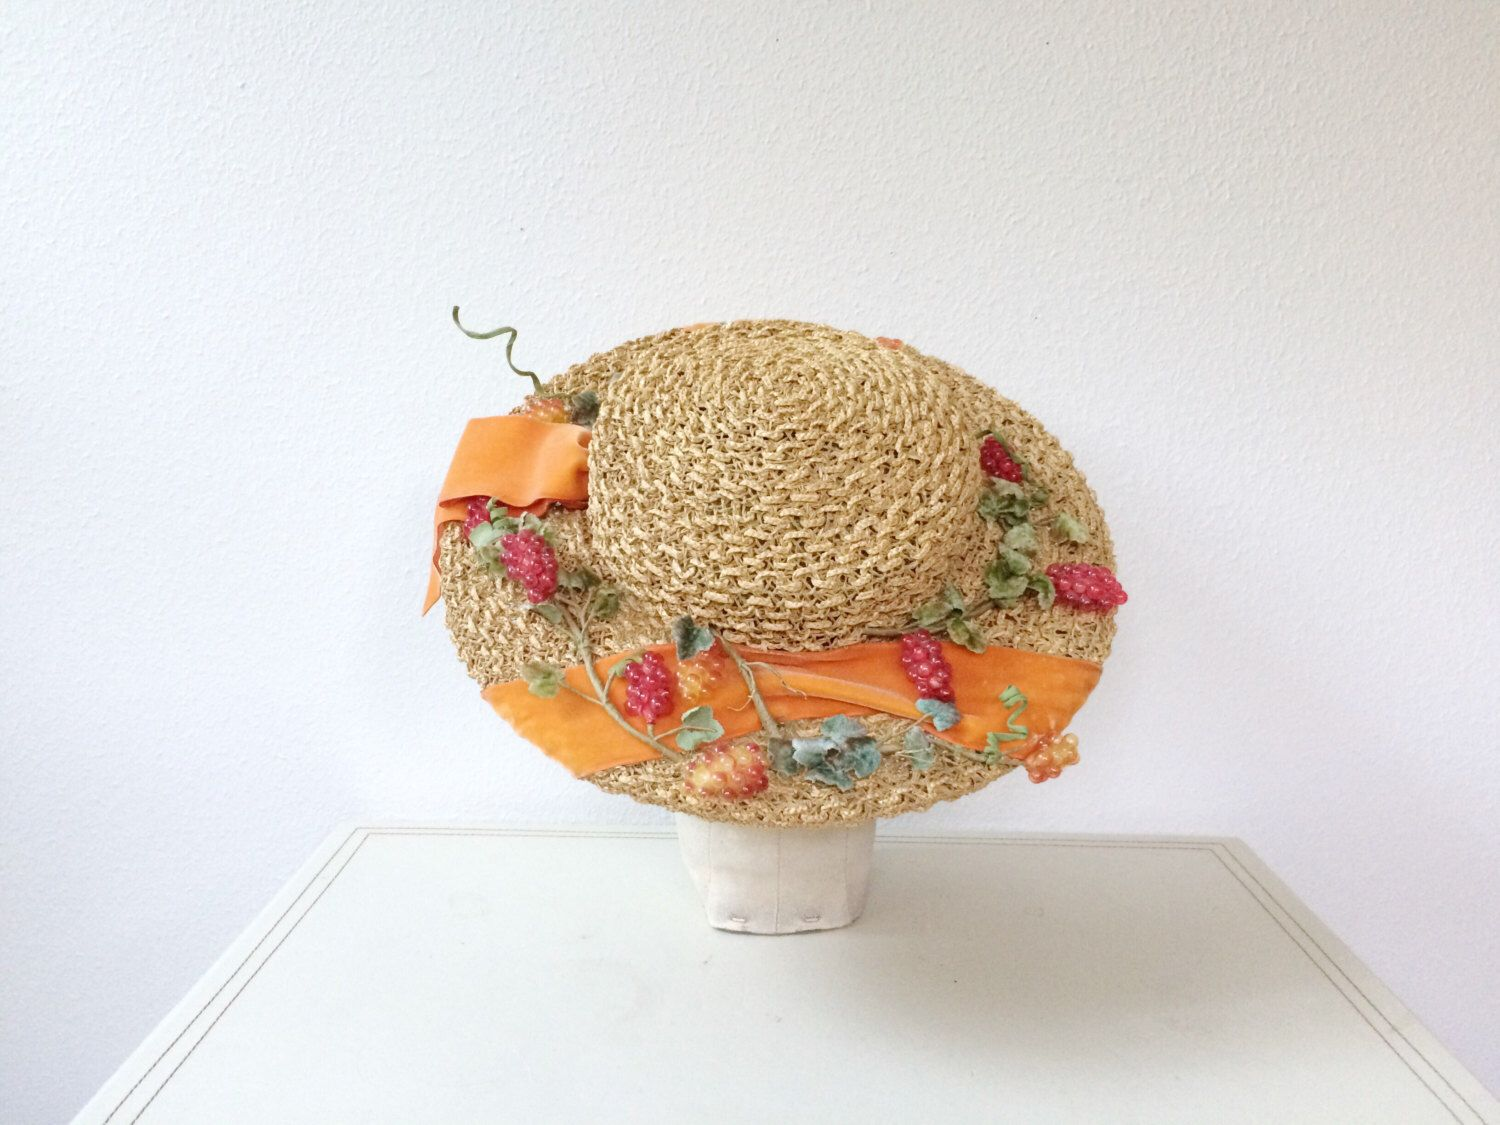 vintage straw hat / Mr. John hat / Grape Harvest hat by nocarnations on Etsy https://www.etsy.com/listing/470950316/vintage-straw-hat-mr-john-hat-grape